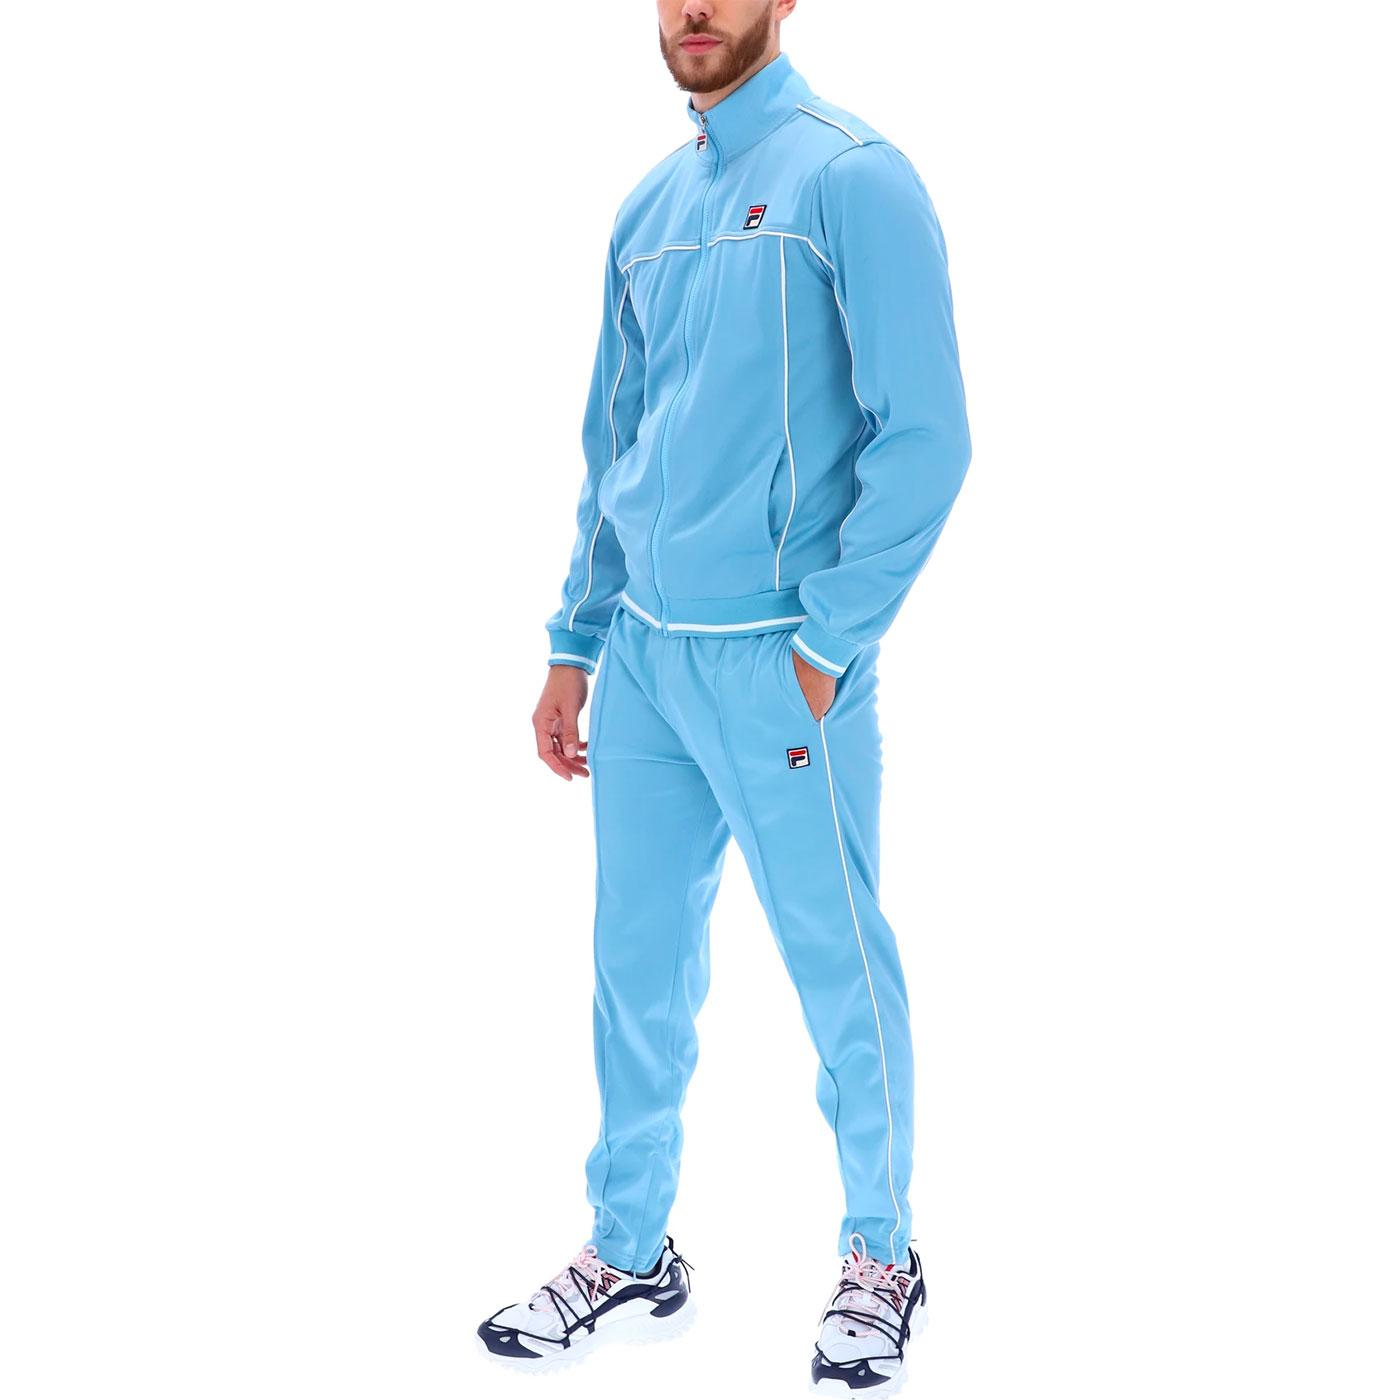 Terry FILA VINTAGE Retro 80s Piped Tracksuit AB